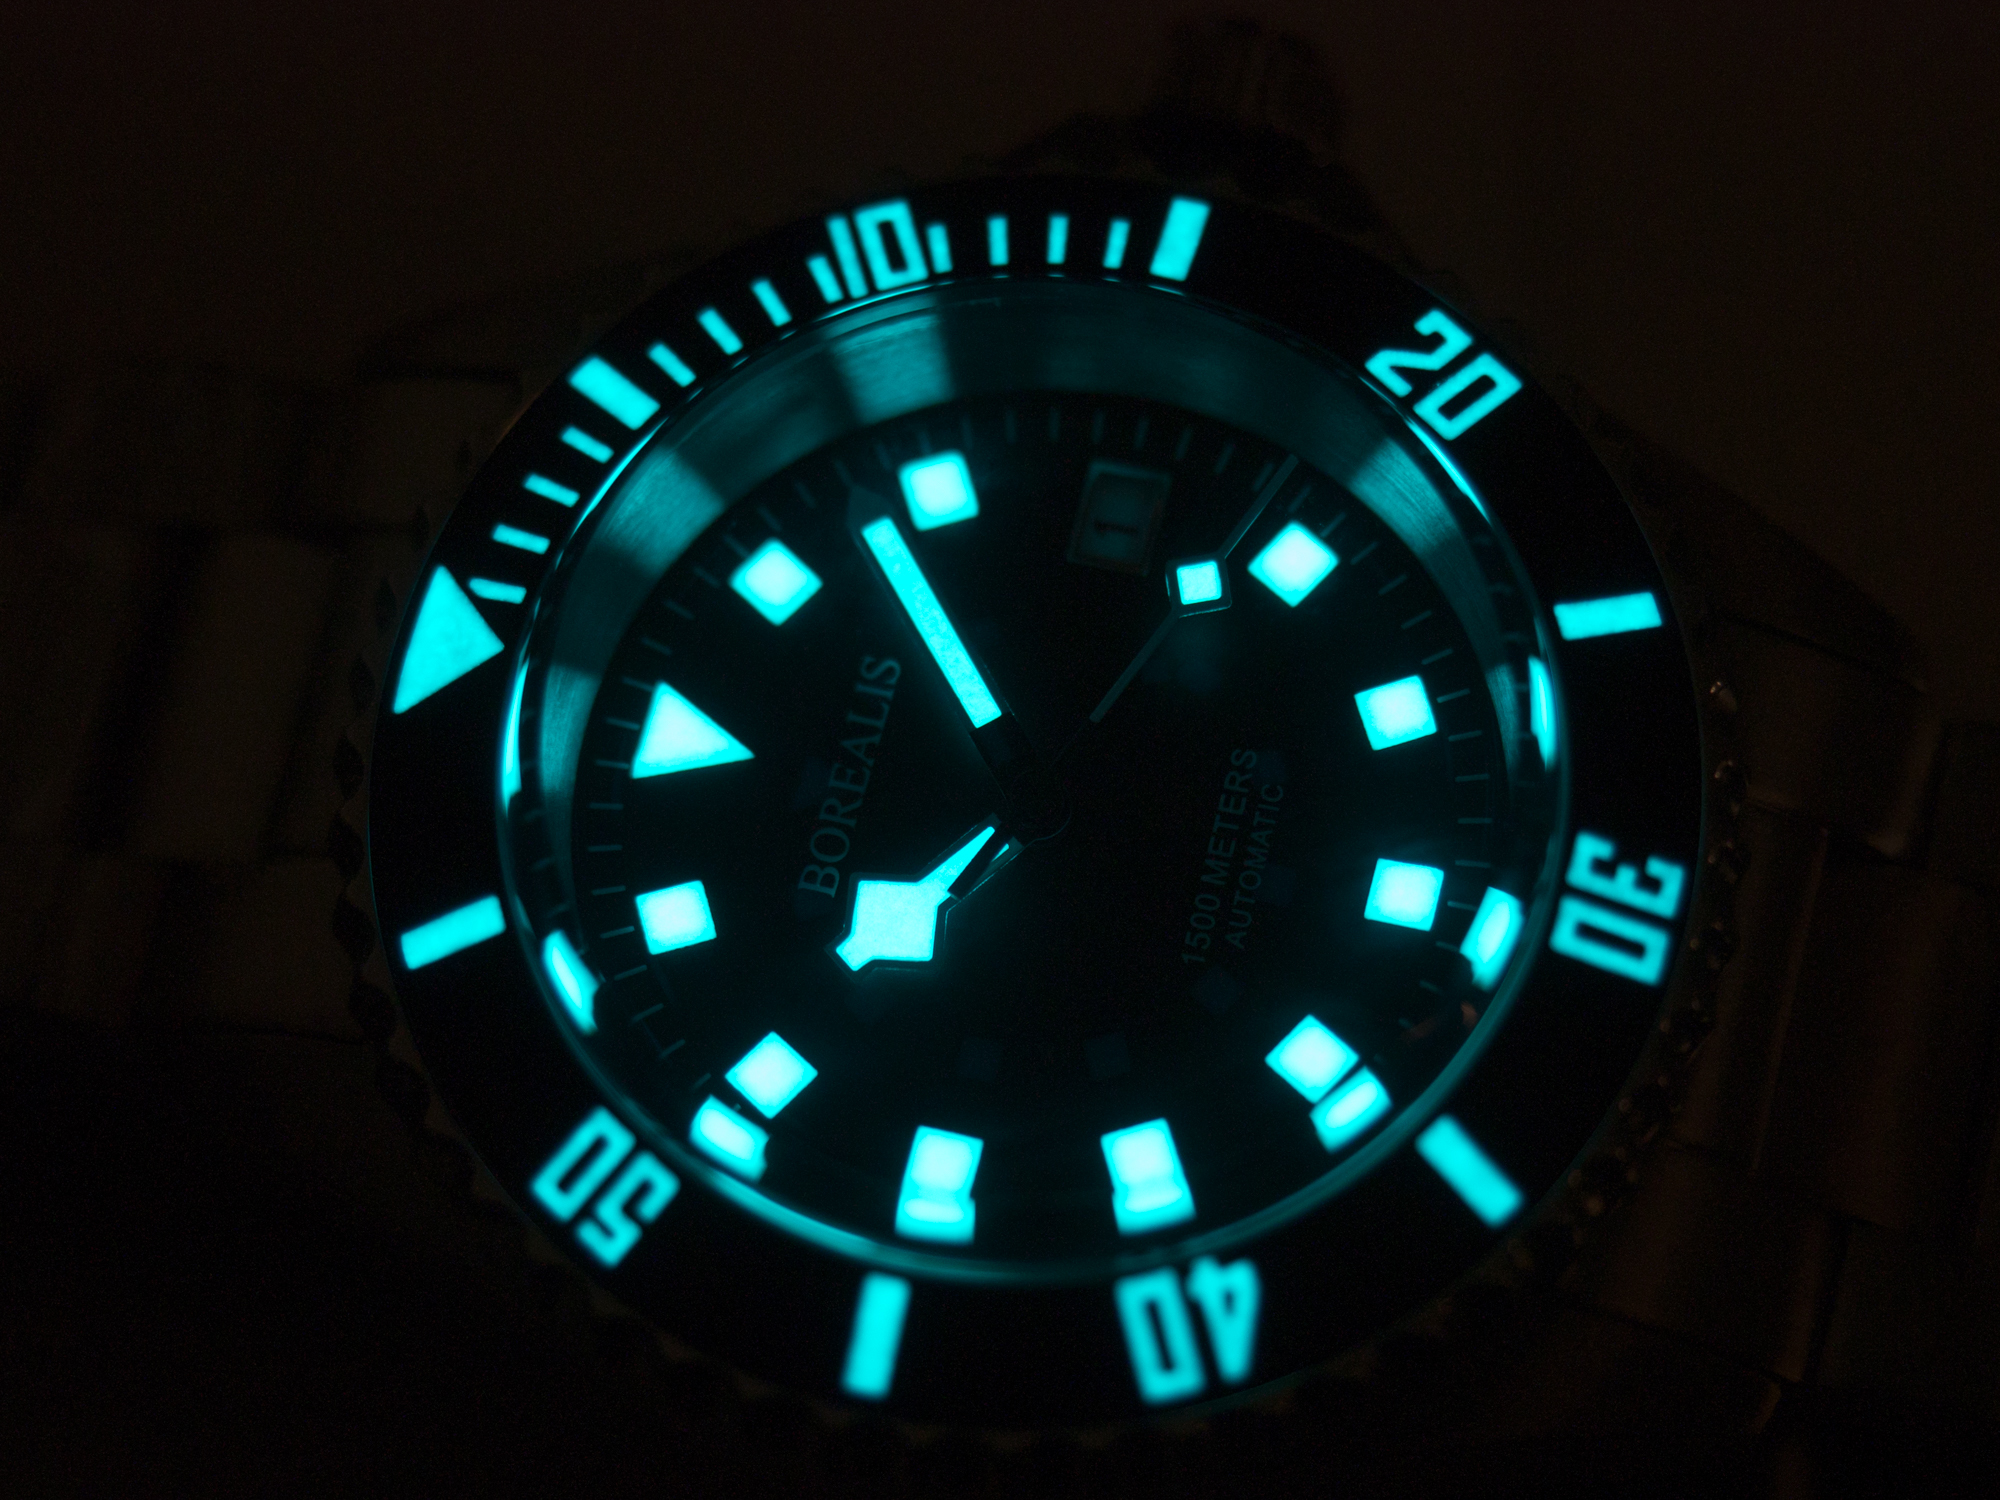 Borealis Sea Hawk 1500m Diver Watch Black Ceramic Bezel Black Dial Lume